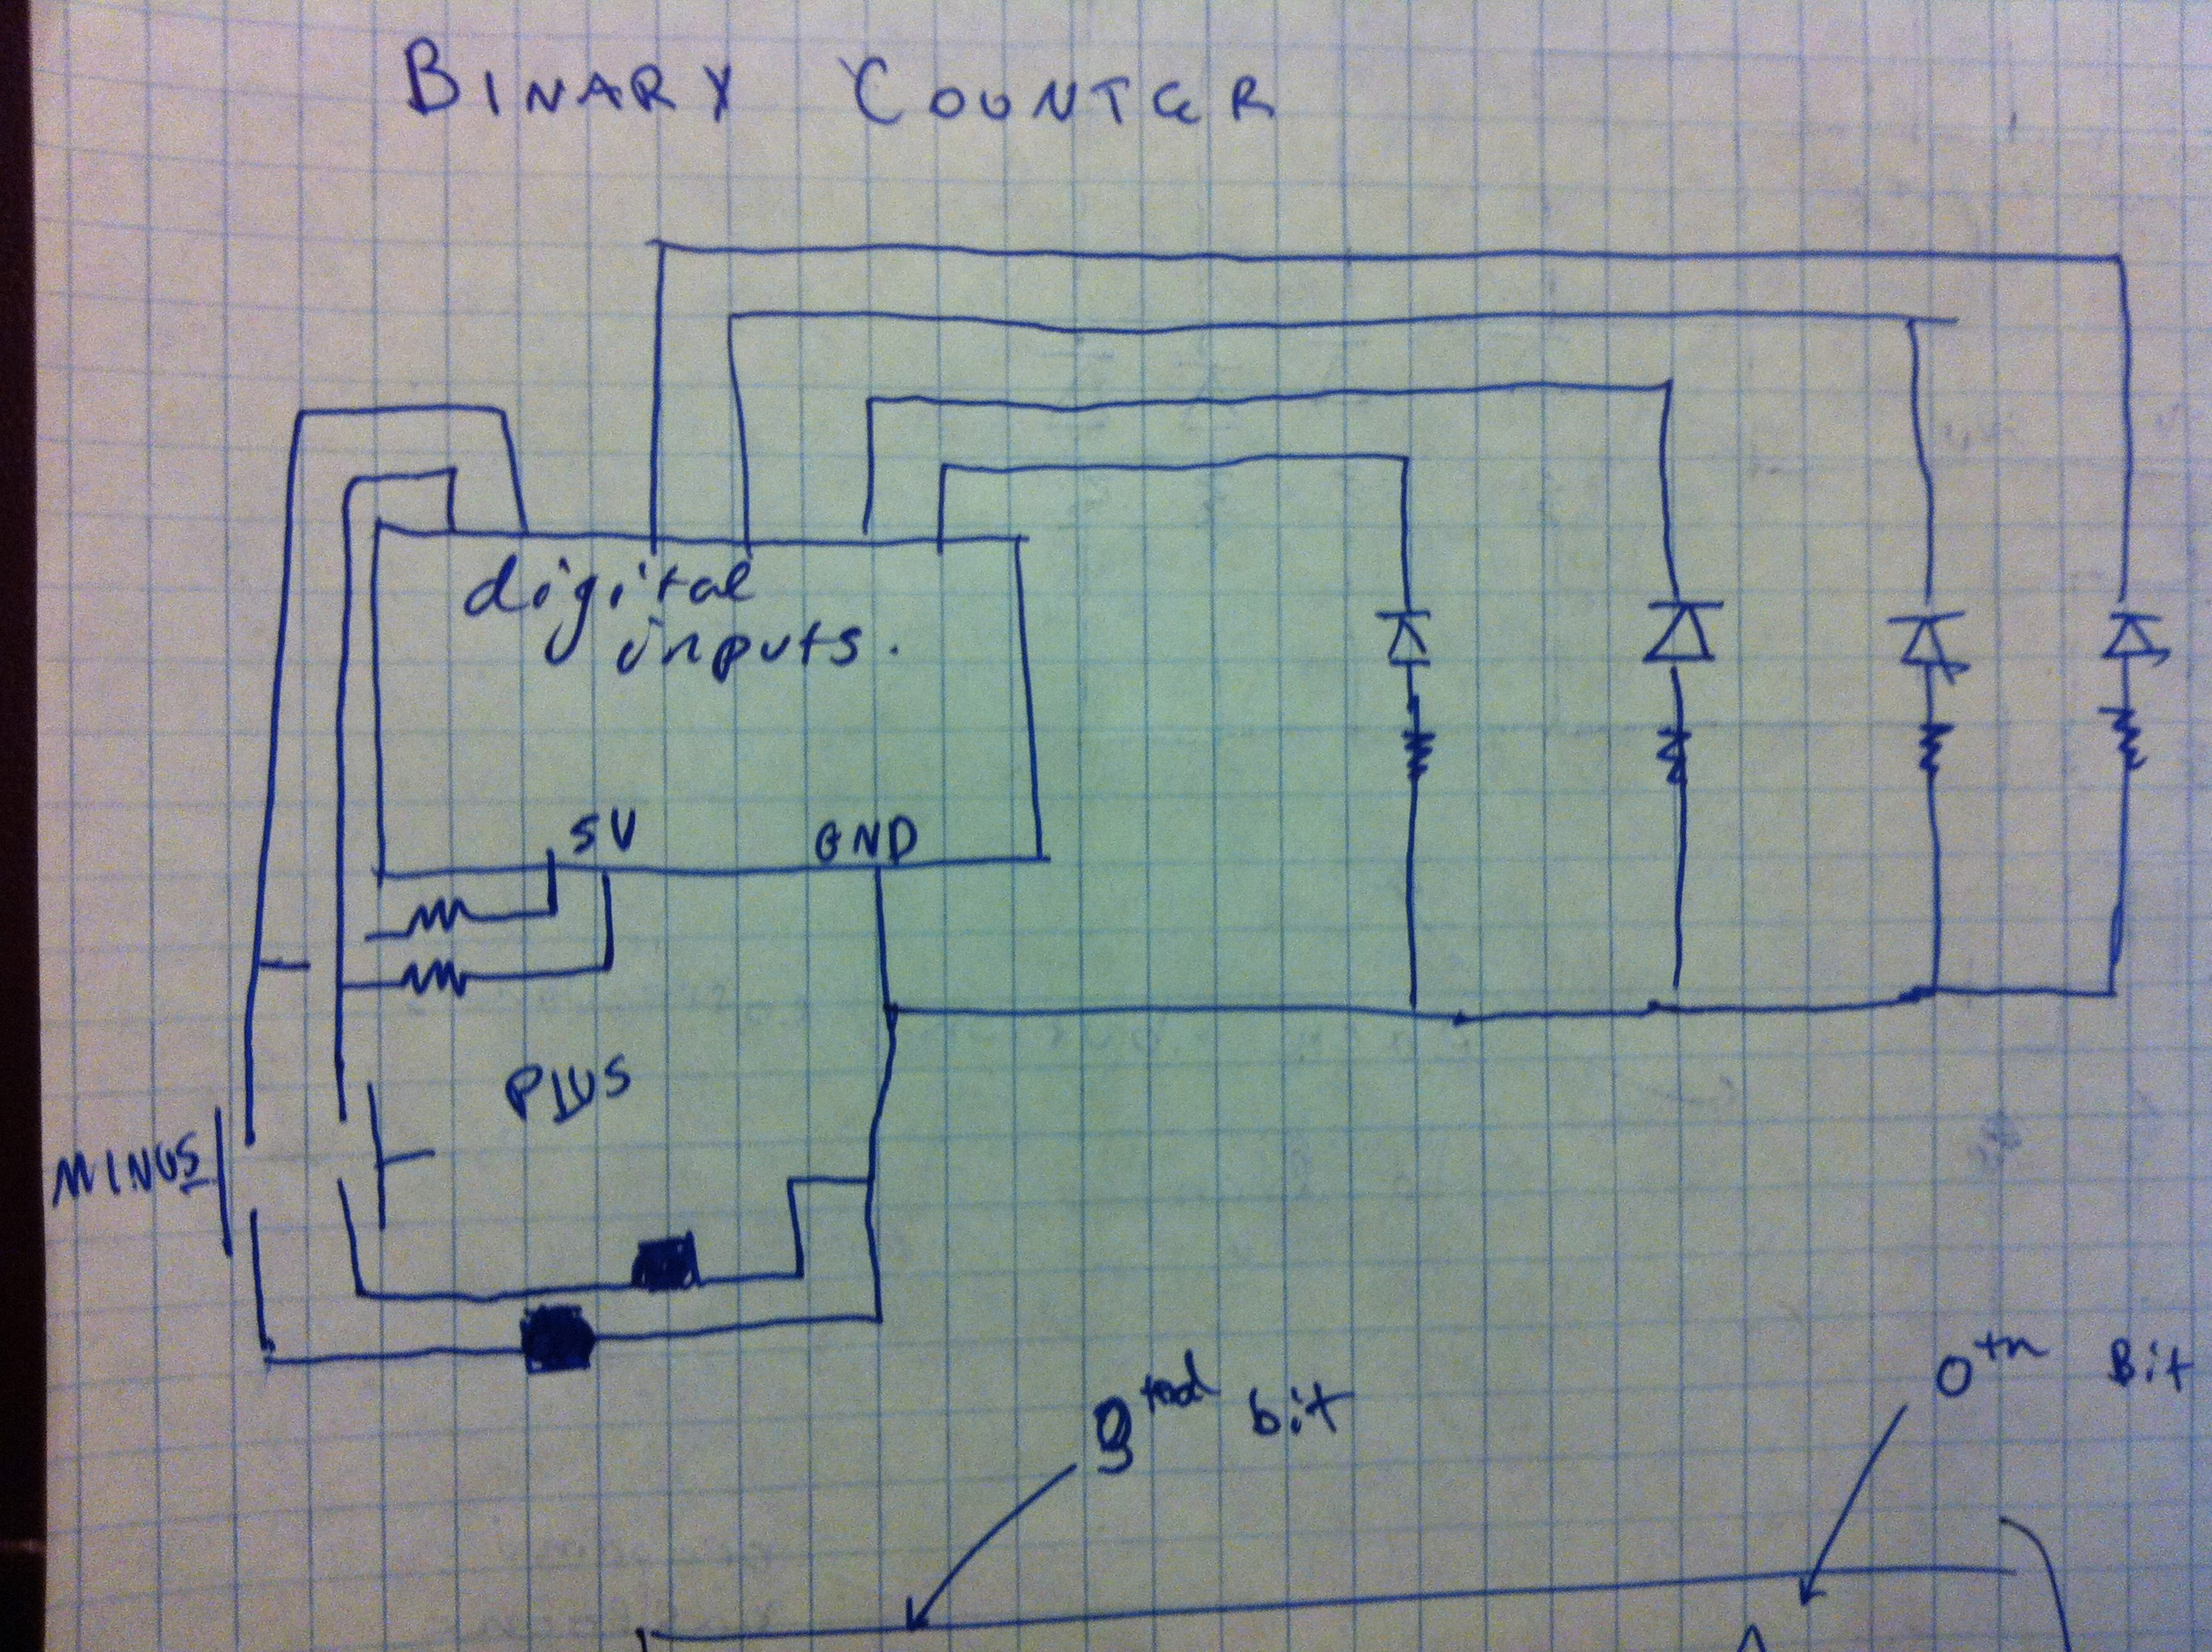 Lab0 Human Computer Interface Technology Page 2 Staircase Circuit Wiring Diagram Binary Drawing Of The Counter Circuitry